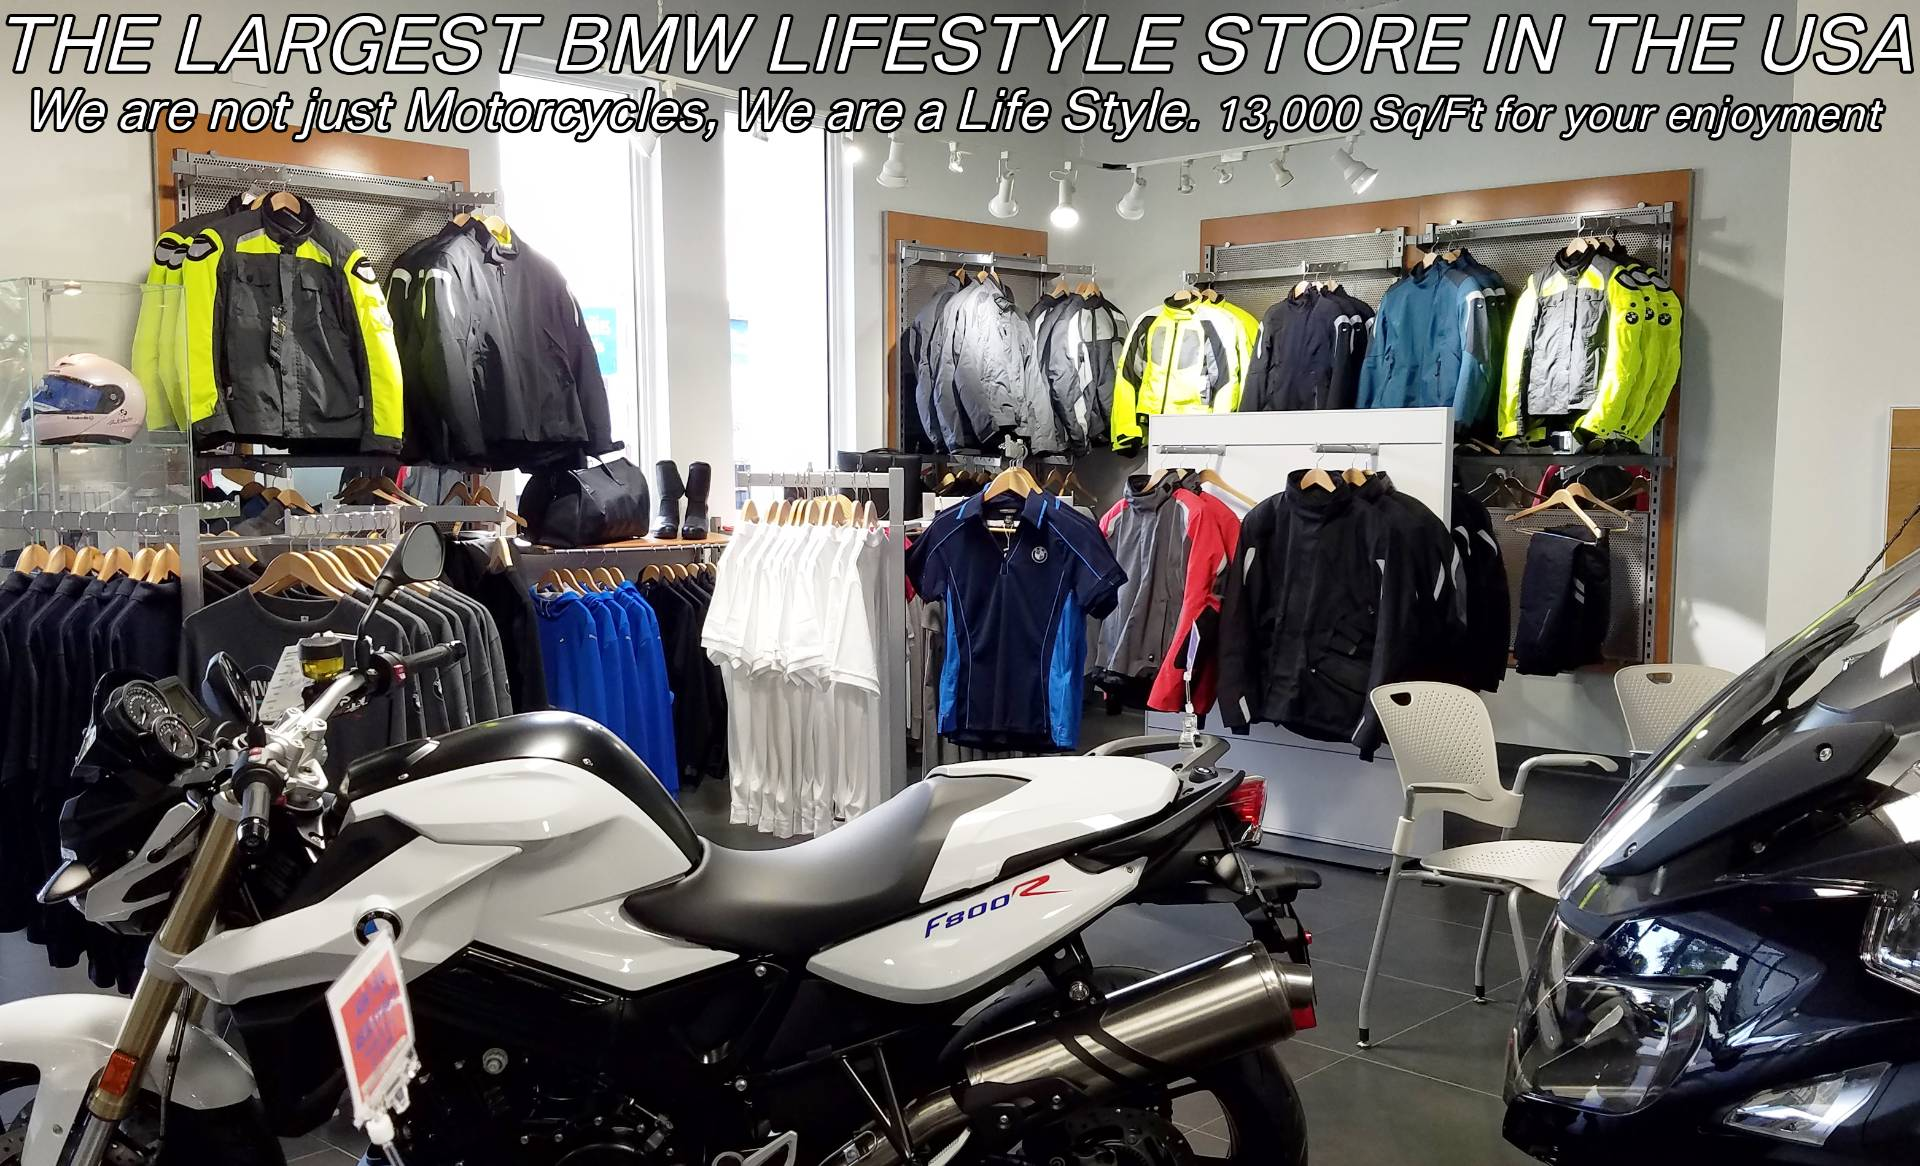 BMW Motorcycles of Miami, Motorcycles of Miami, Motorcycles Miami, New Motorcycles, Used Motorcycles, pre-owned. #BMWMotorcyclesOfMiami #MotorcyclesOfMiami. - Photo 21